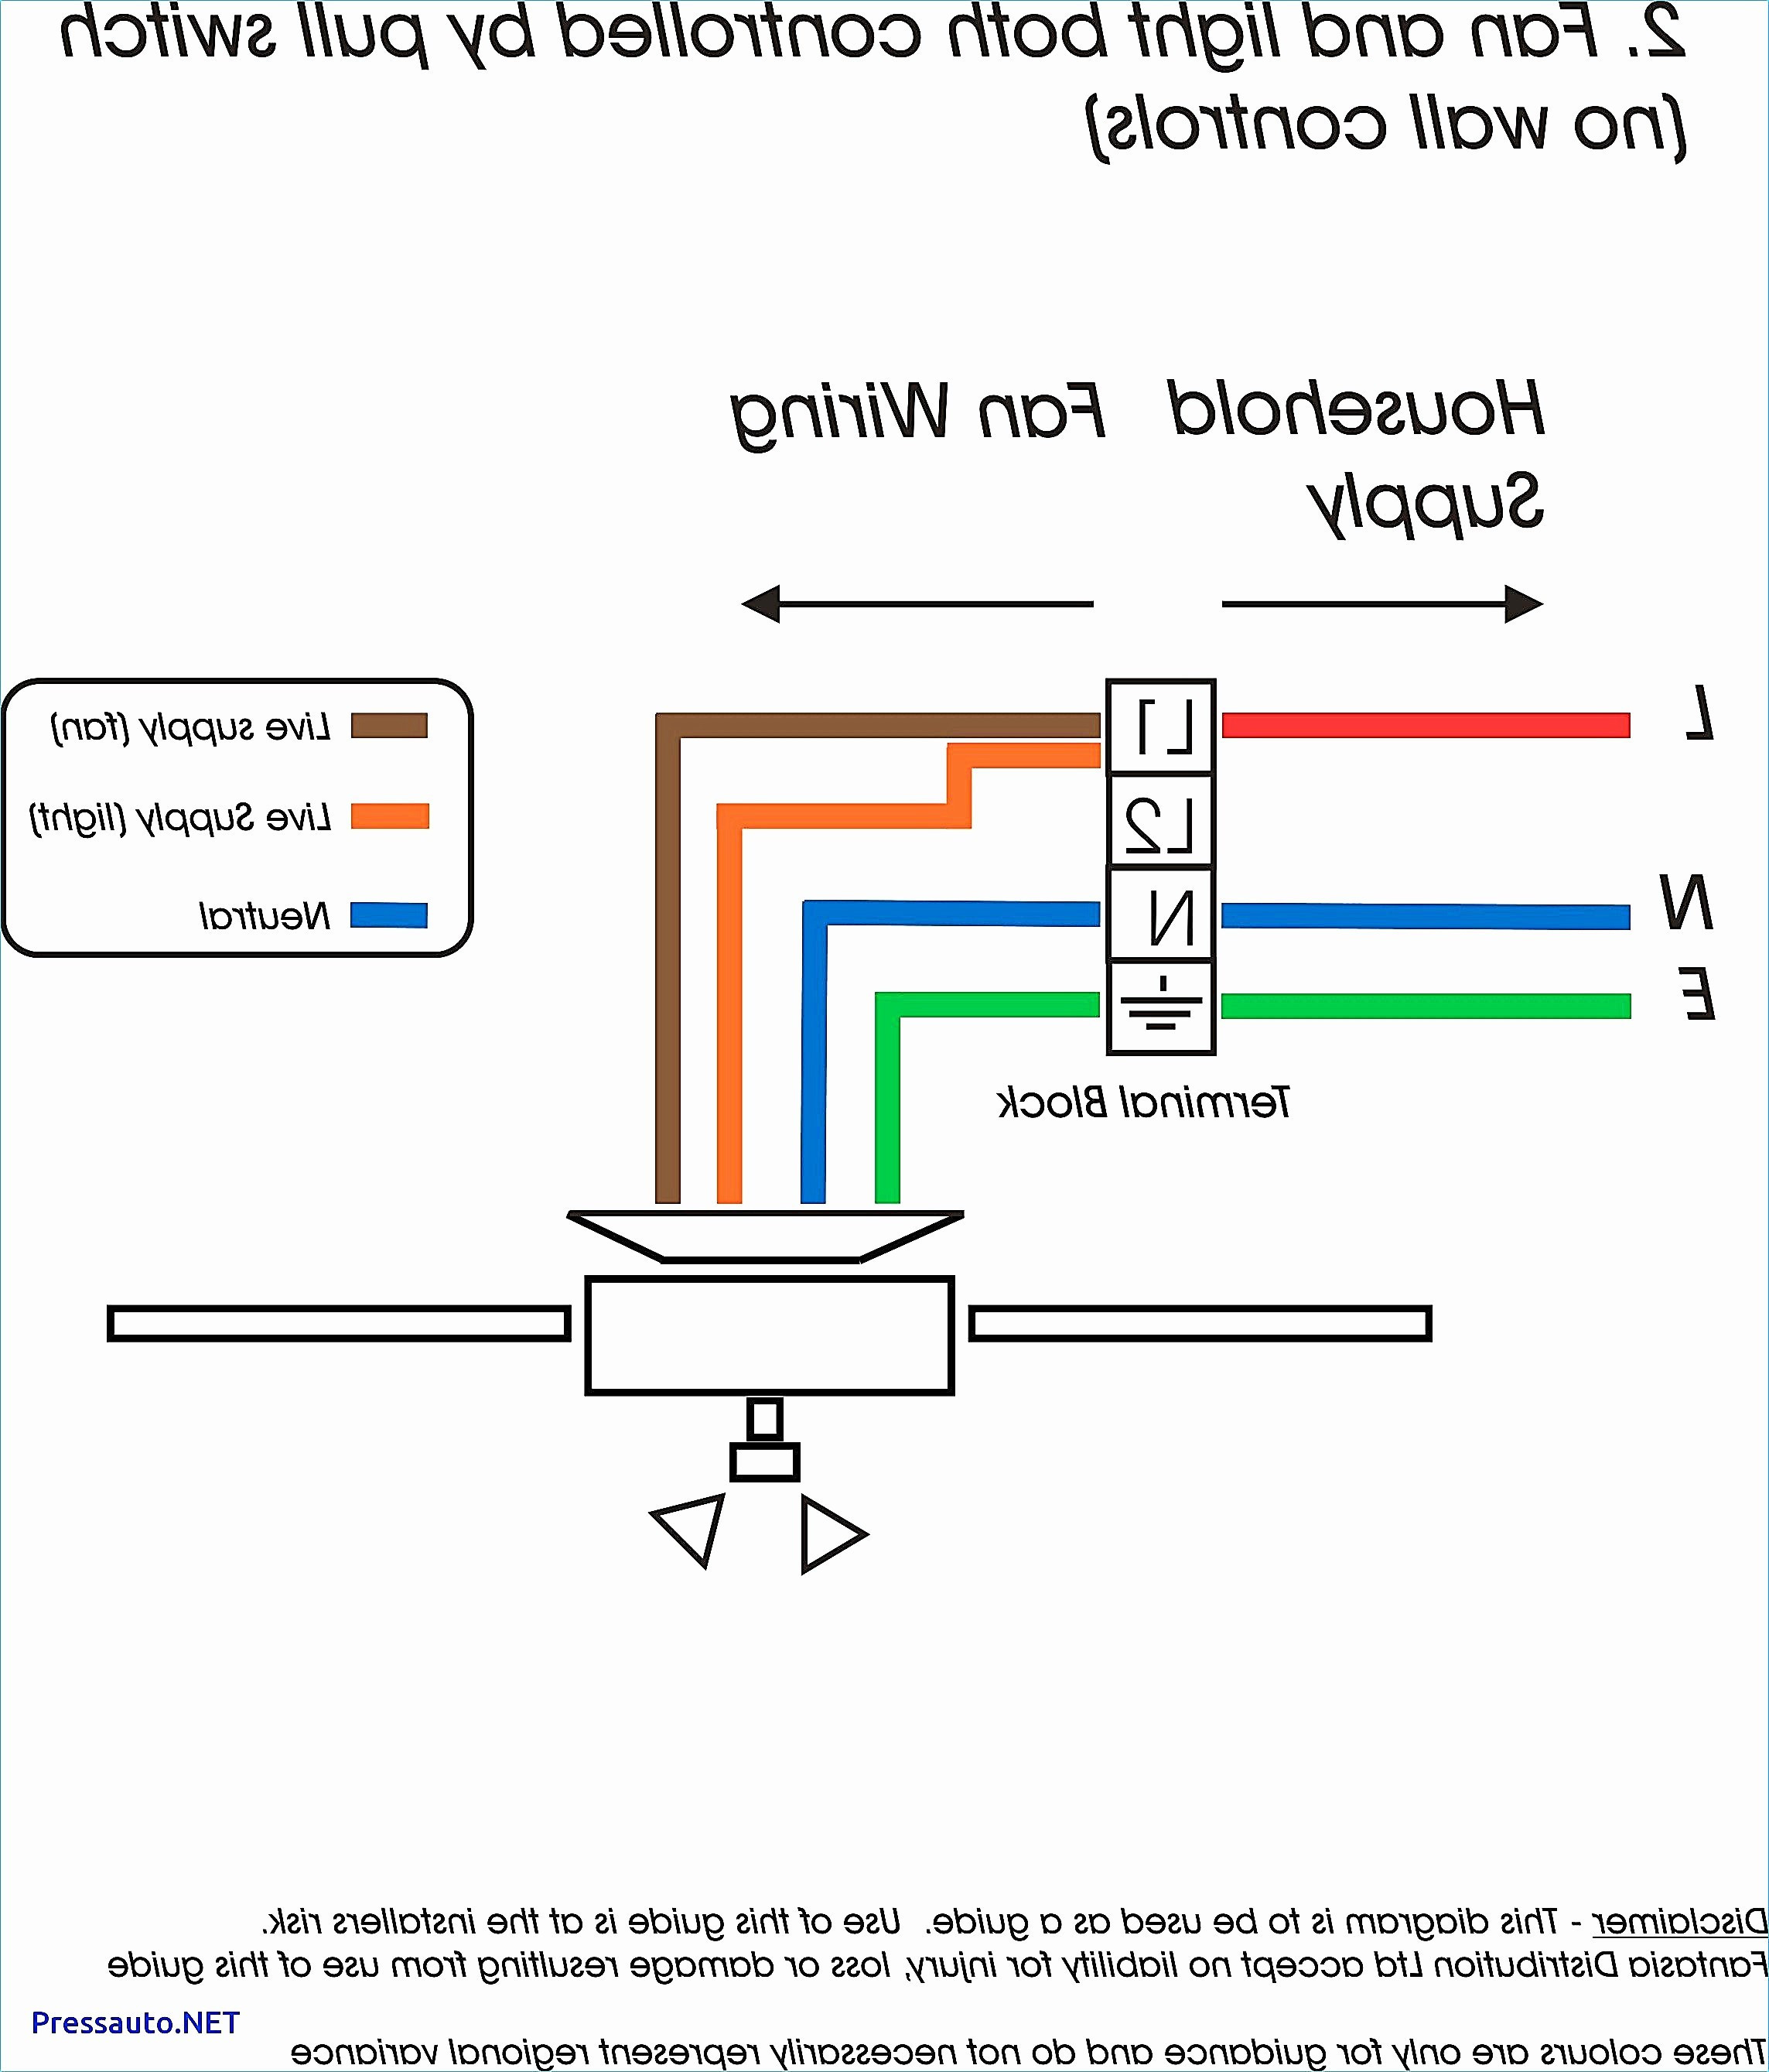 tata ace electrical wiring diagram Download-Wiring Diagram for Multiple Downlights top rated Wiring Diagram for Led Downlights New Wiring Diagram 15-p